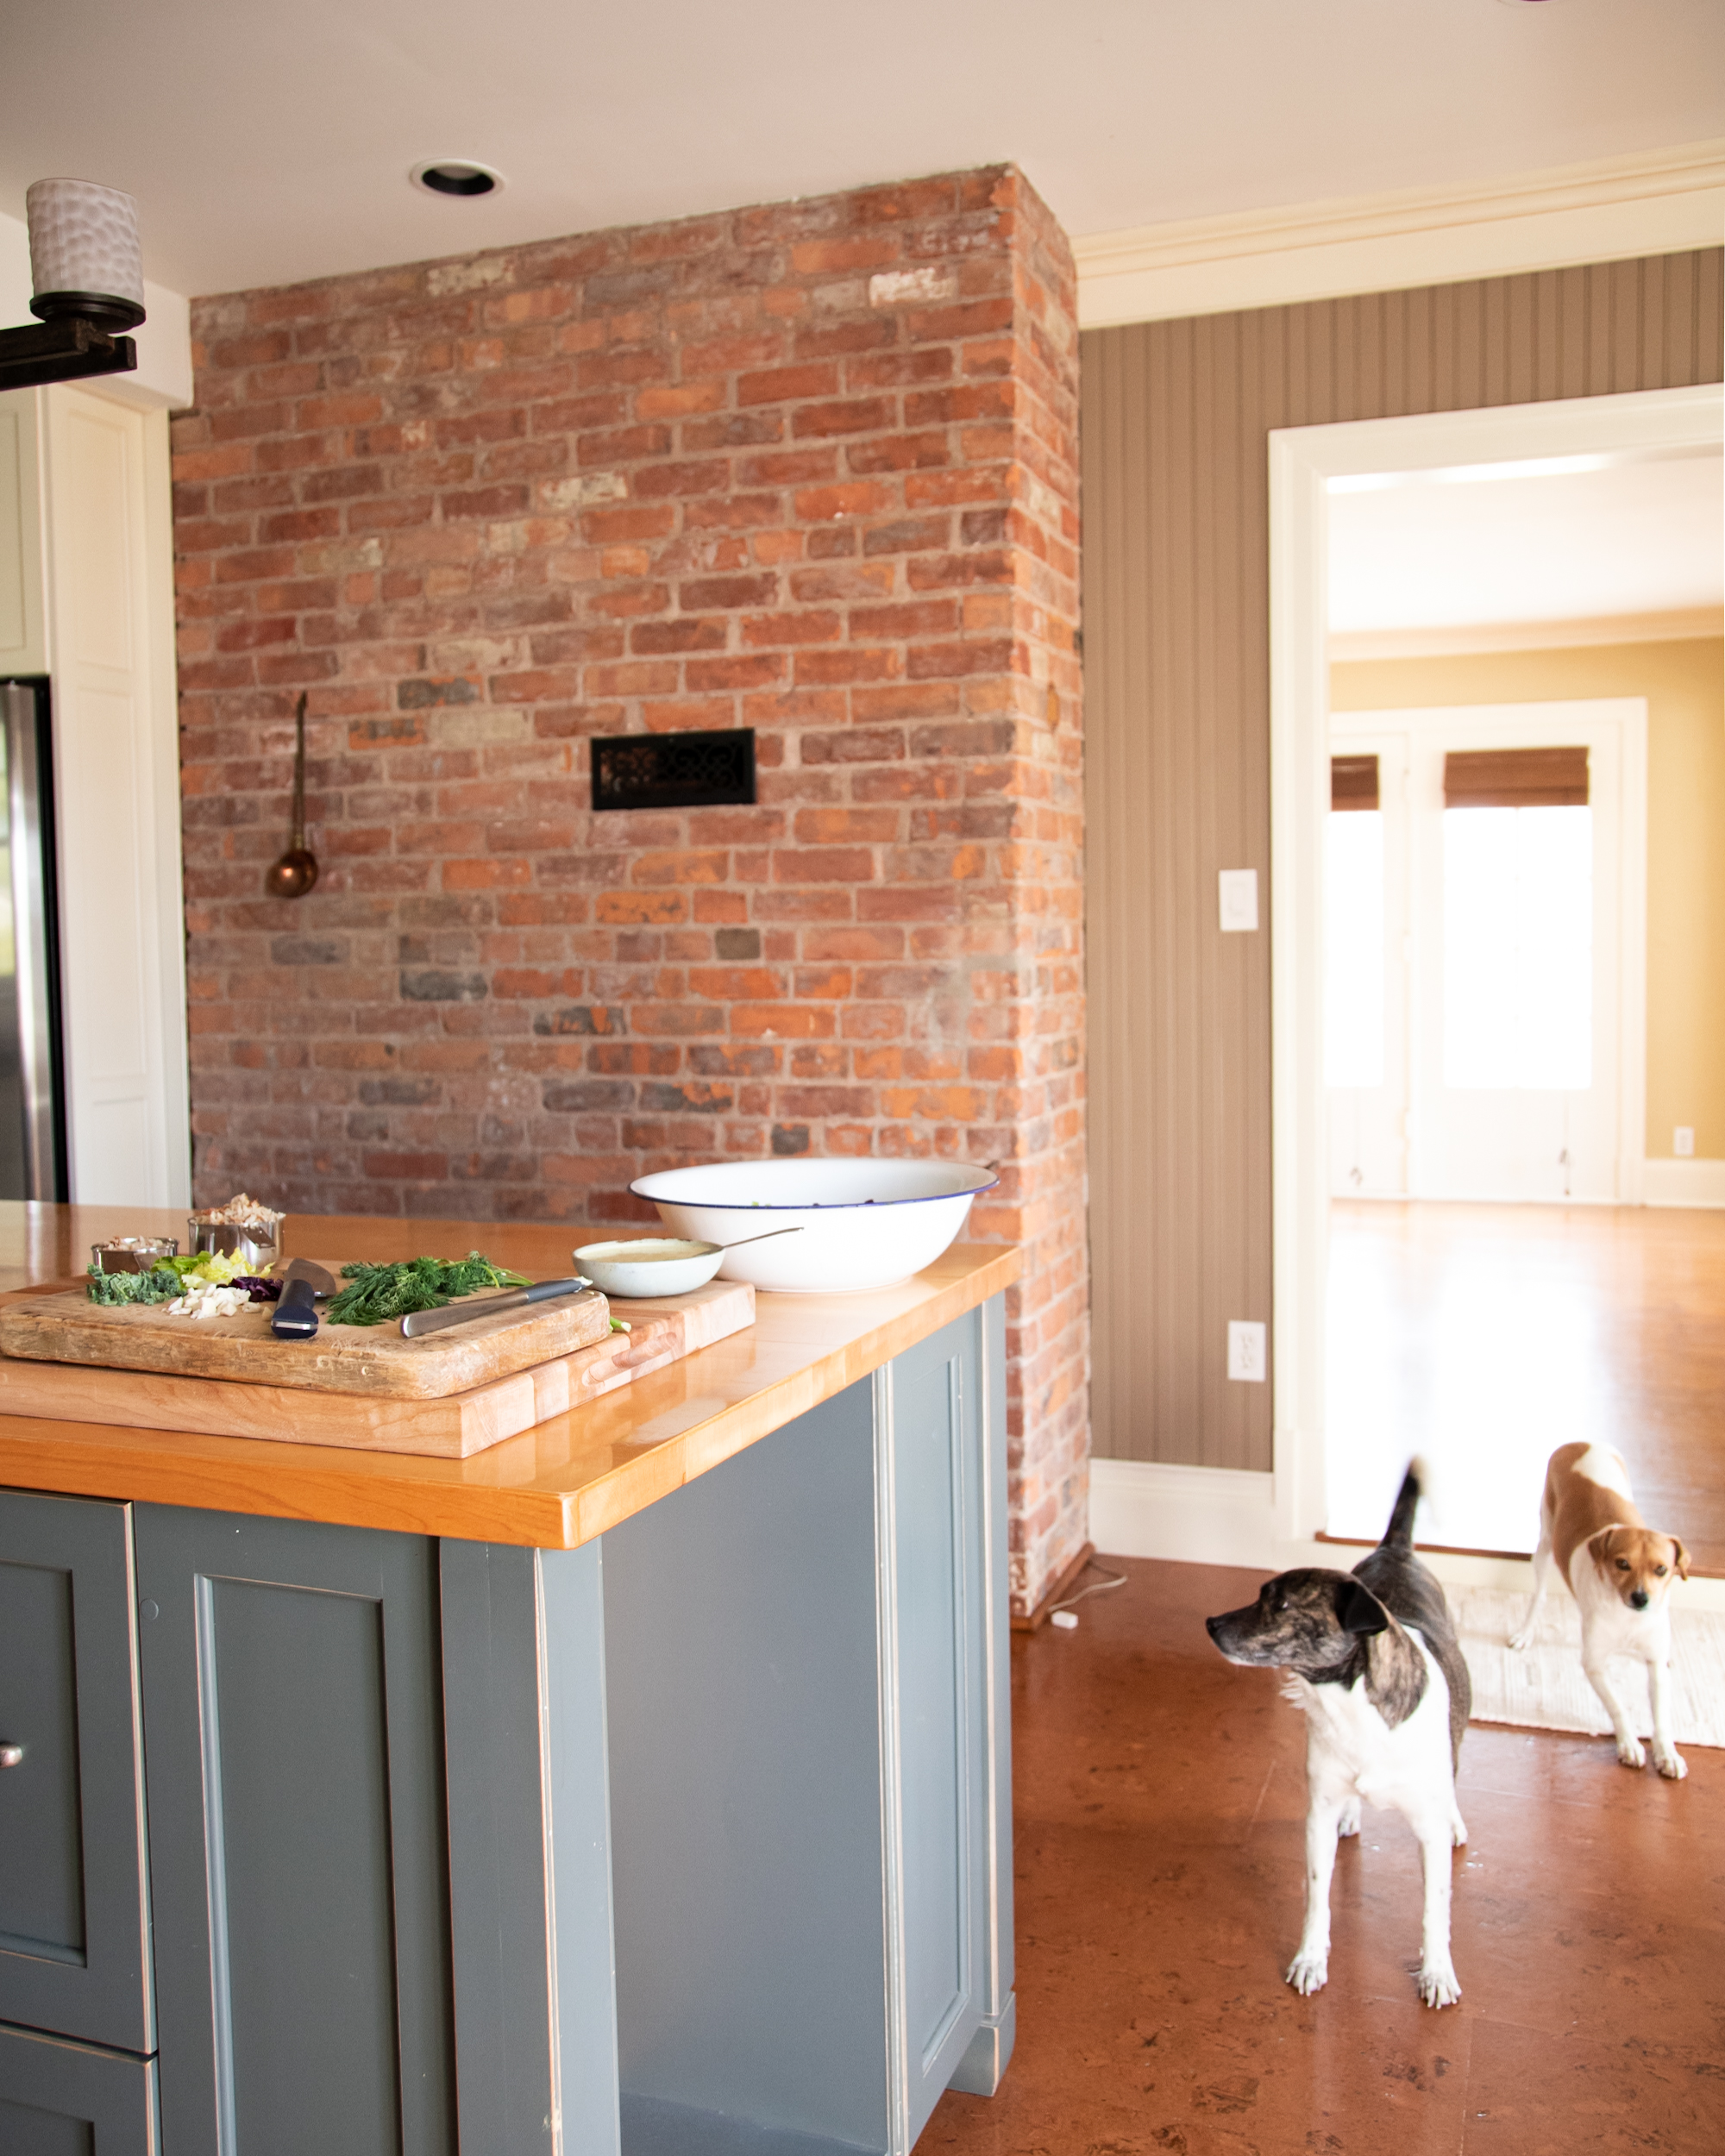 Image shows a kitchen scene with a brick wall and two very cute, small dogs hanging around to the side.